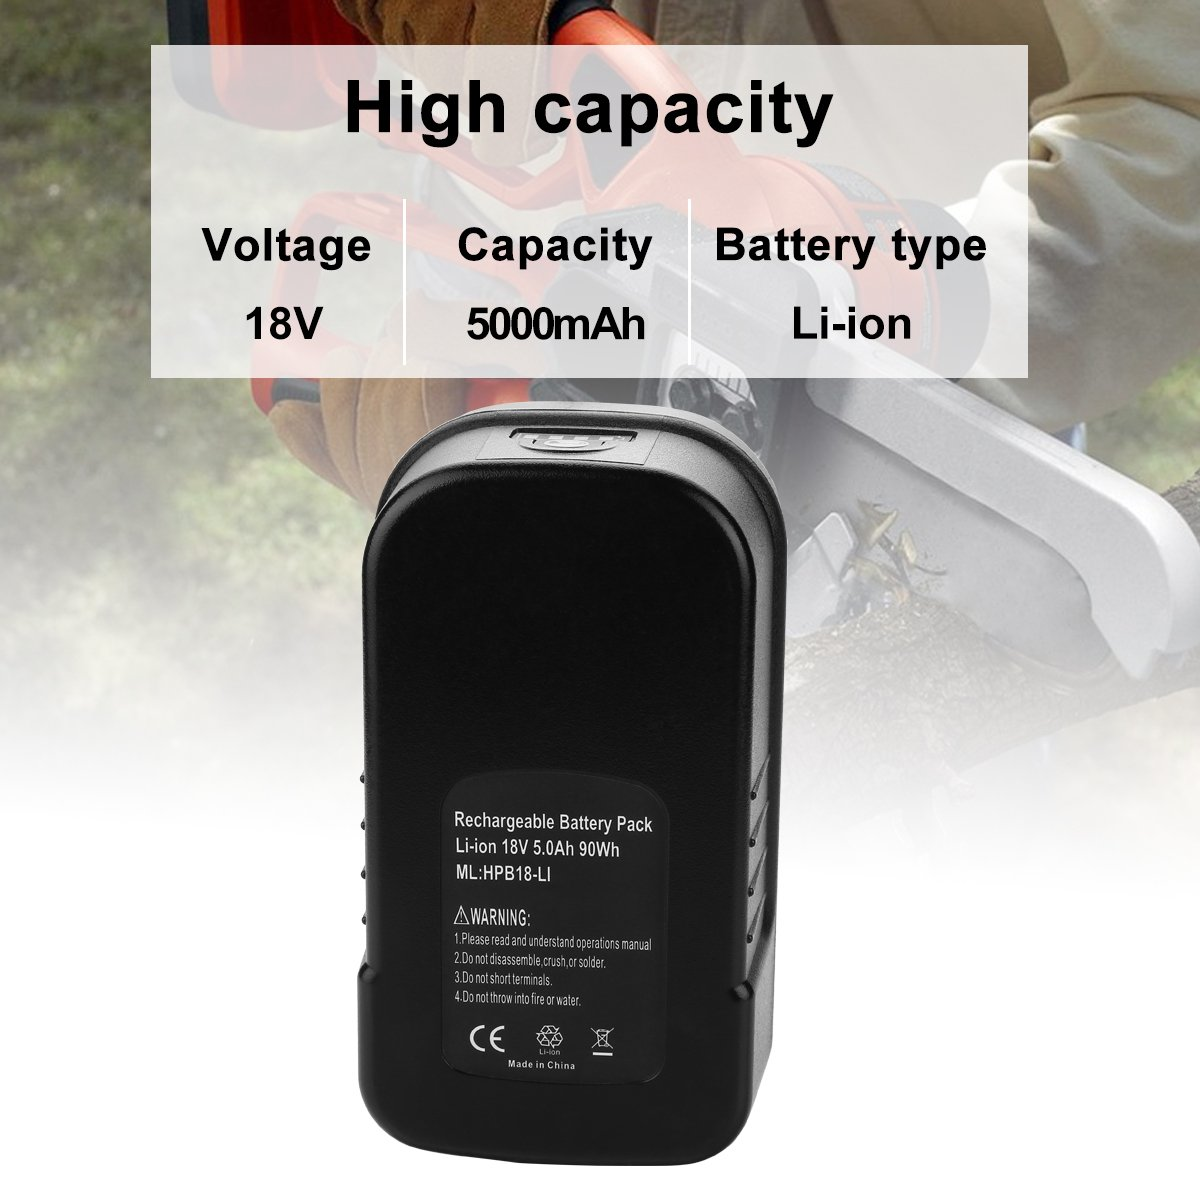 Energup Upgraded 5000mAh Lithium Black & Decker 18V Replacement Battery for HPB18 HPB18-OPE 244760-00 A1718 FS18FL FSB18 Firestorm Black and Decker 18 Volt Battery by Energup (Image #2)